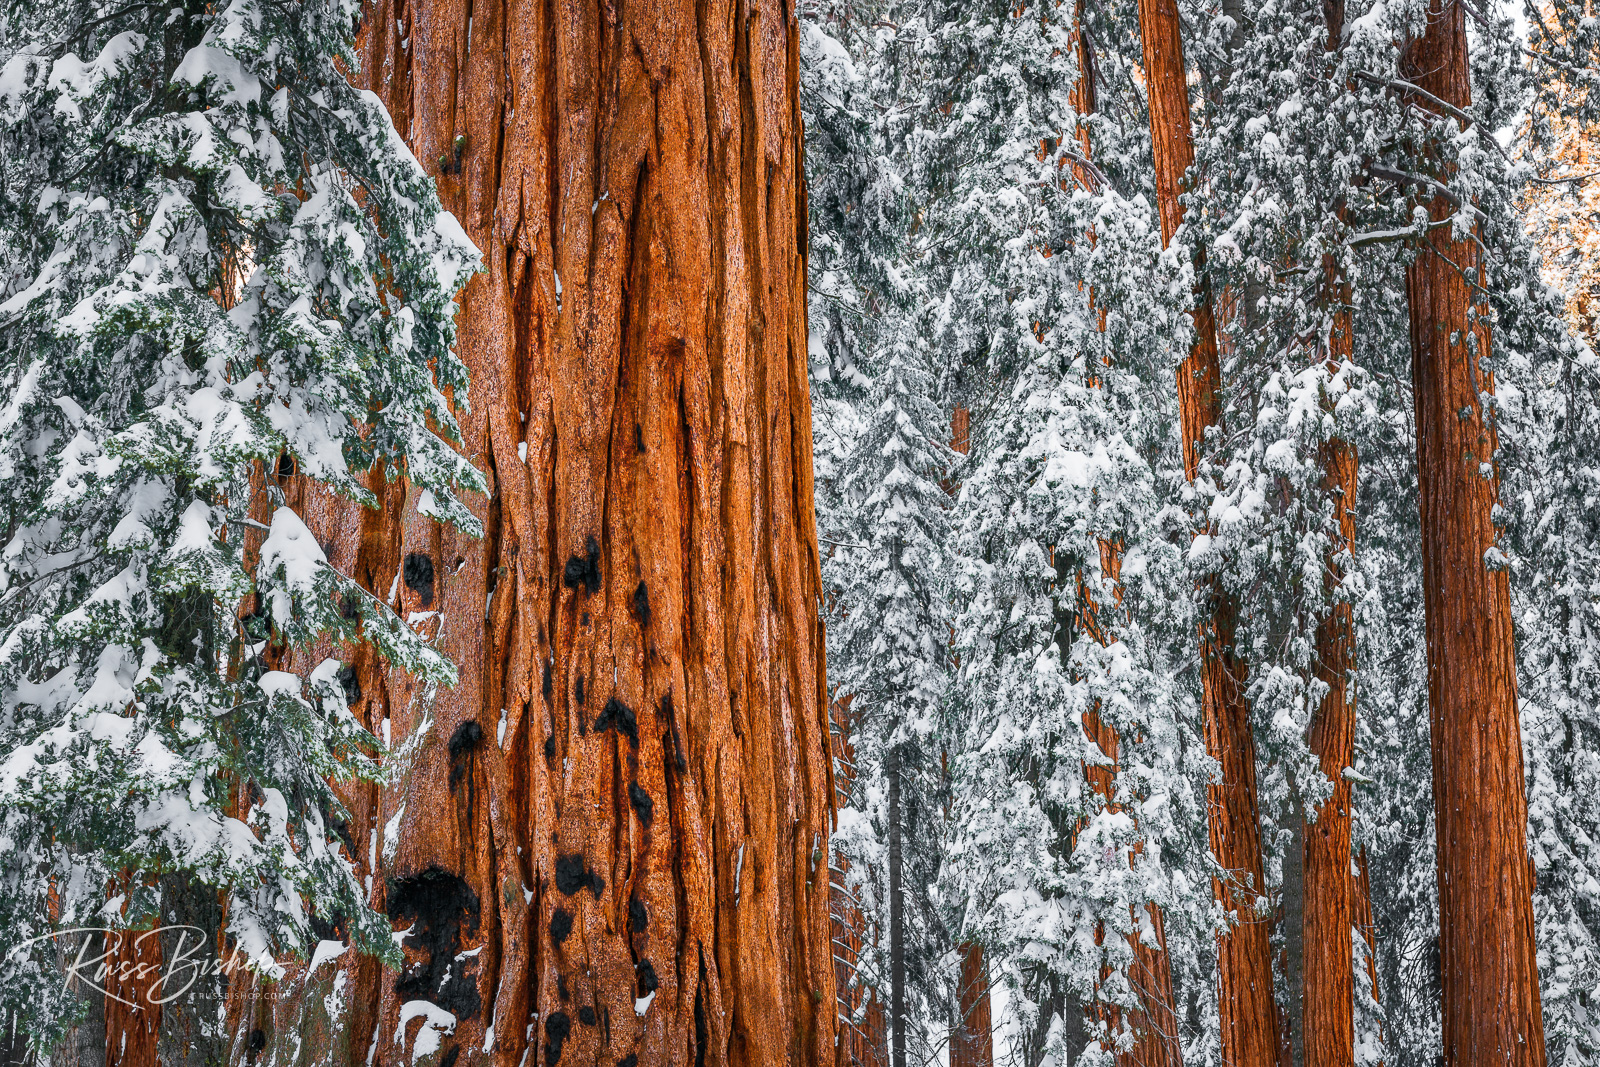 Giant Sequoia in the Congress Grove, Sequoia National Park, California